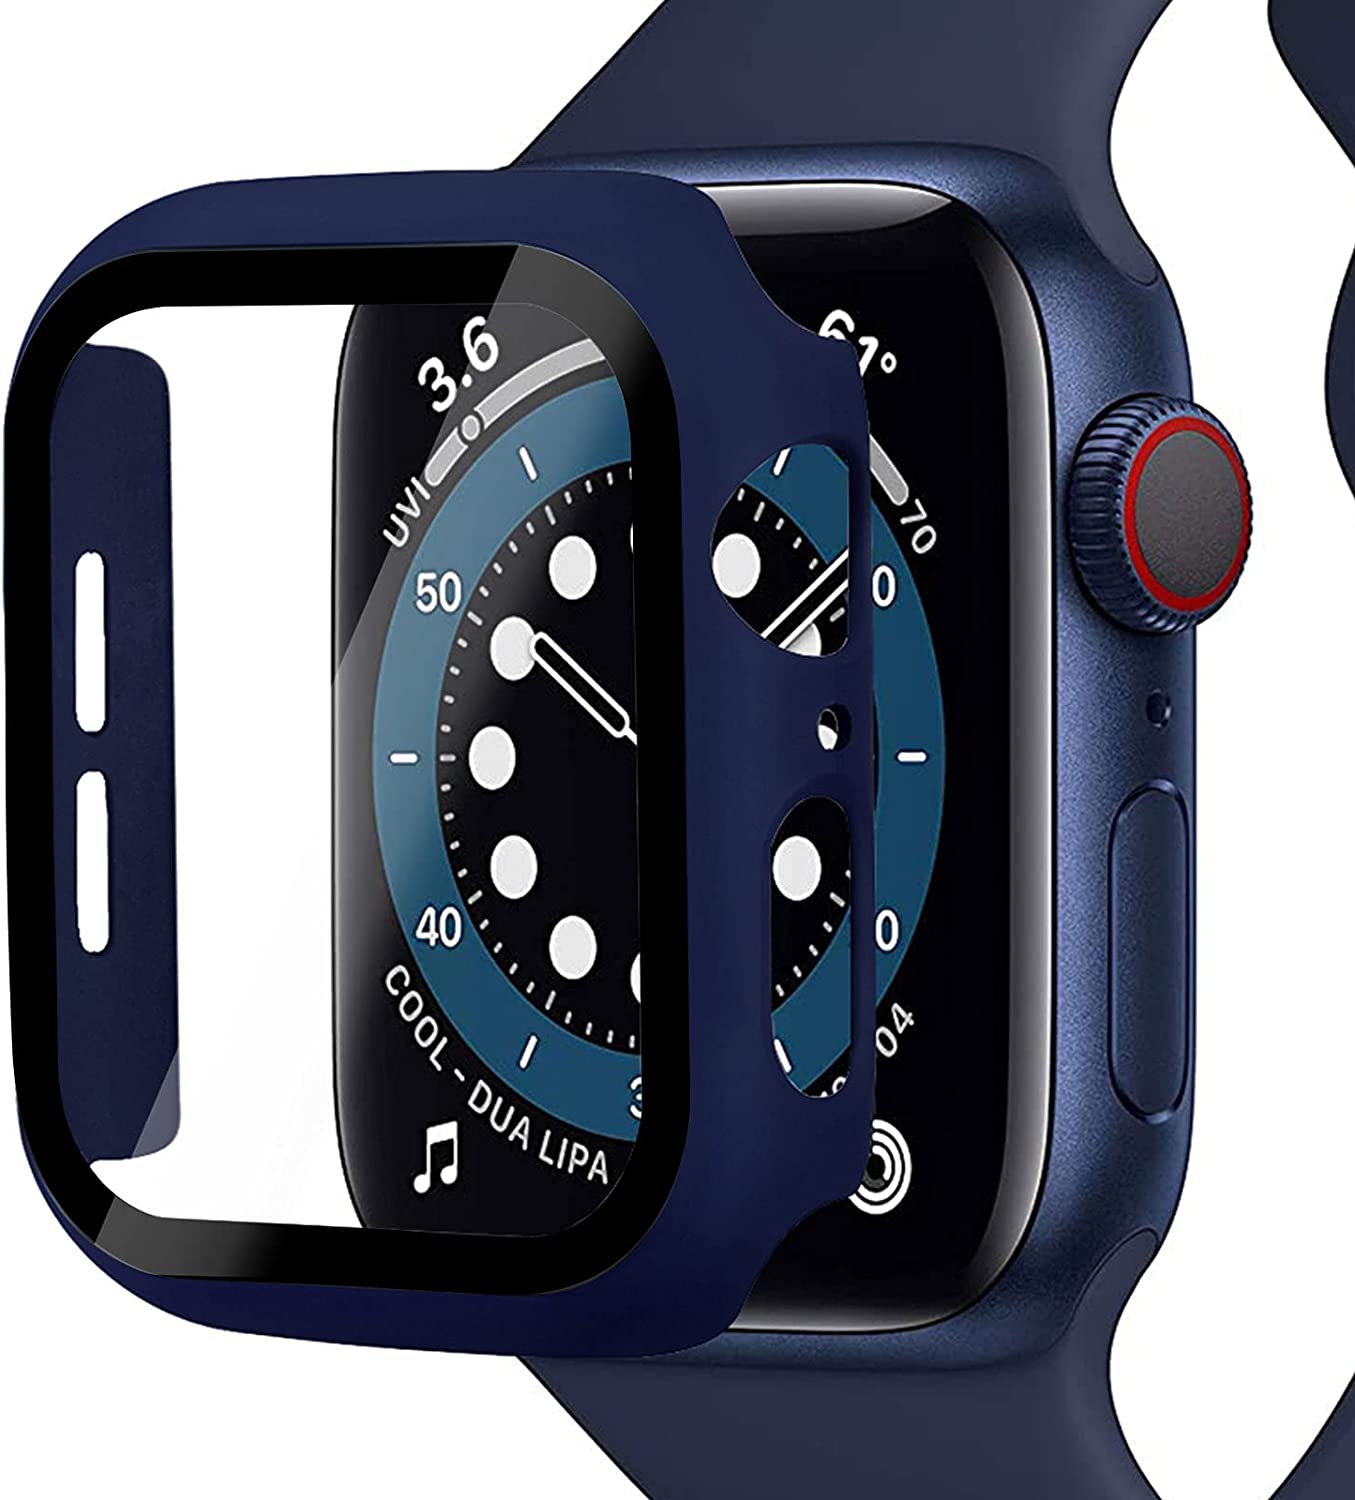 Miimall Compatible Apple Watch Series 6 44mm Case with Screen Protector Anti-Scratch Shockproof Hard PC and Tempered Glass Film Bumper Case for Apple Watch Series 6 Series 5 Series 4 SE 44mm(Blue)